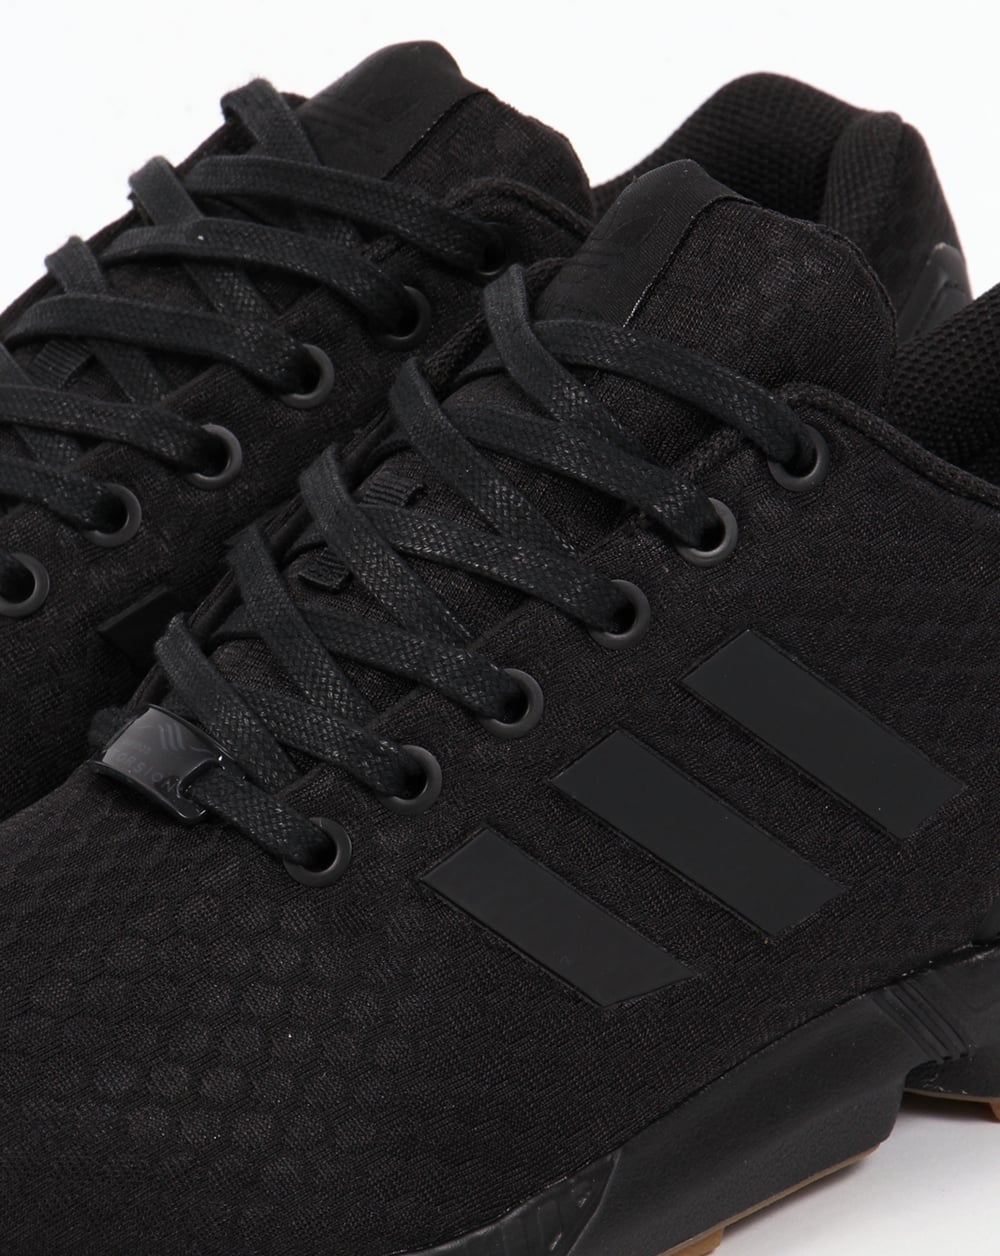 Adidas Flux Trainers Black